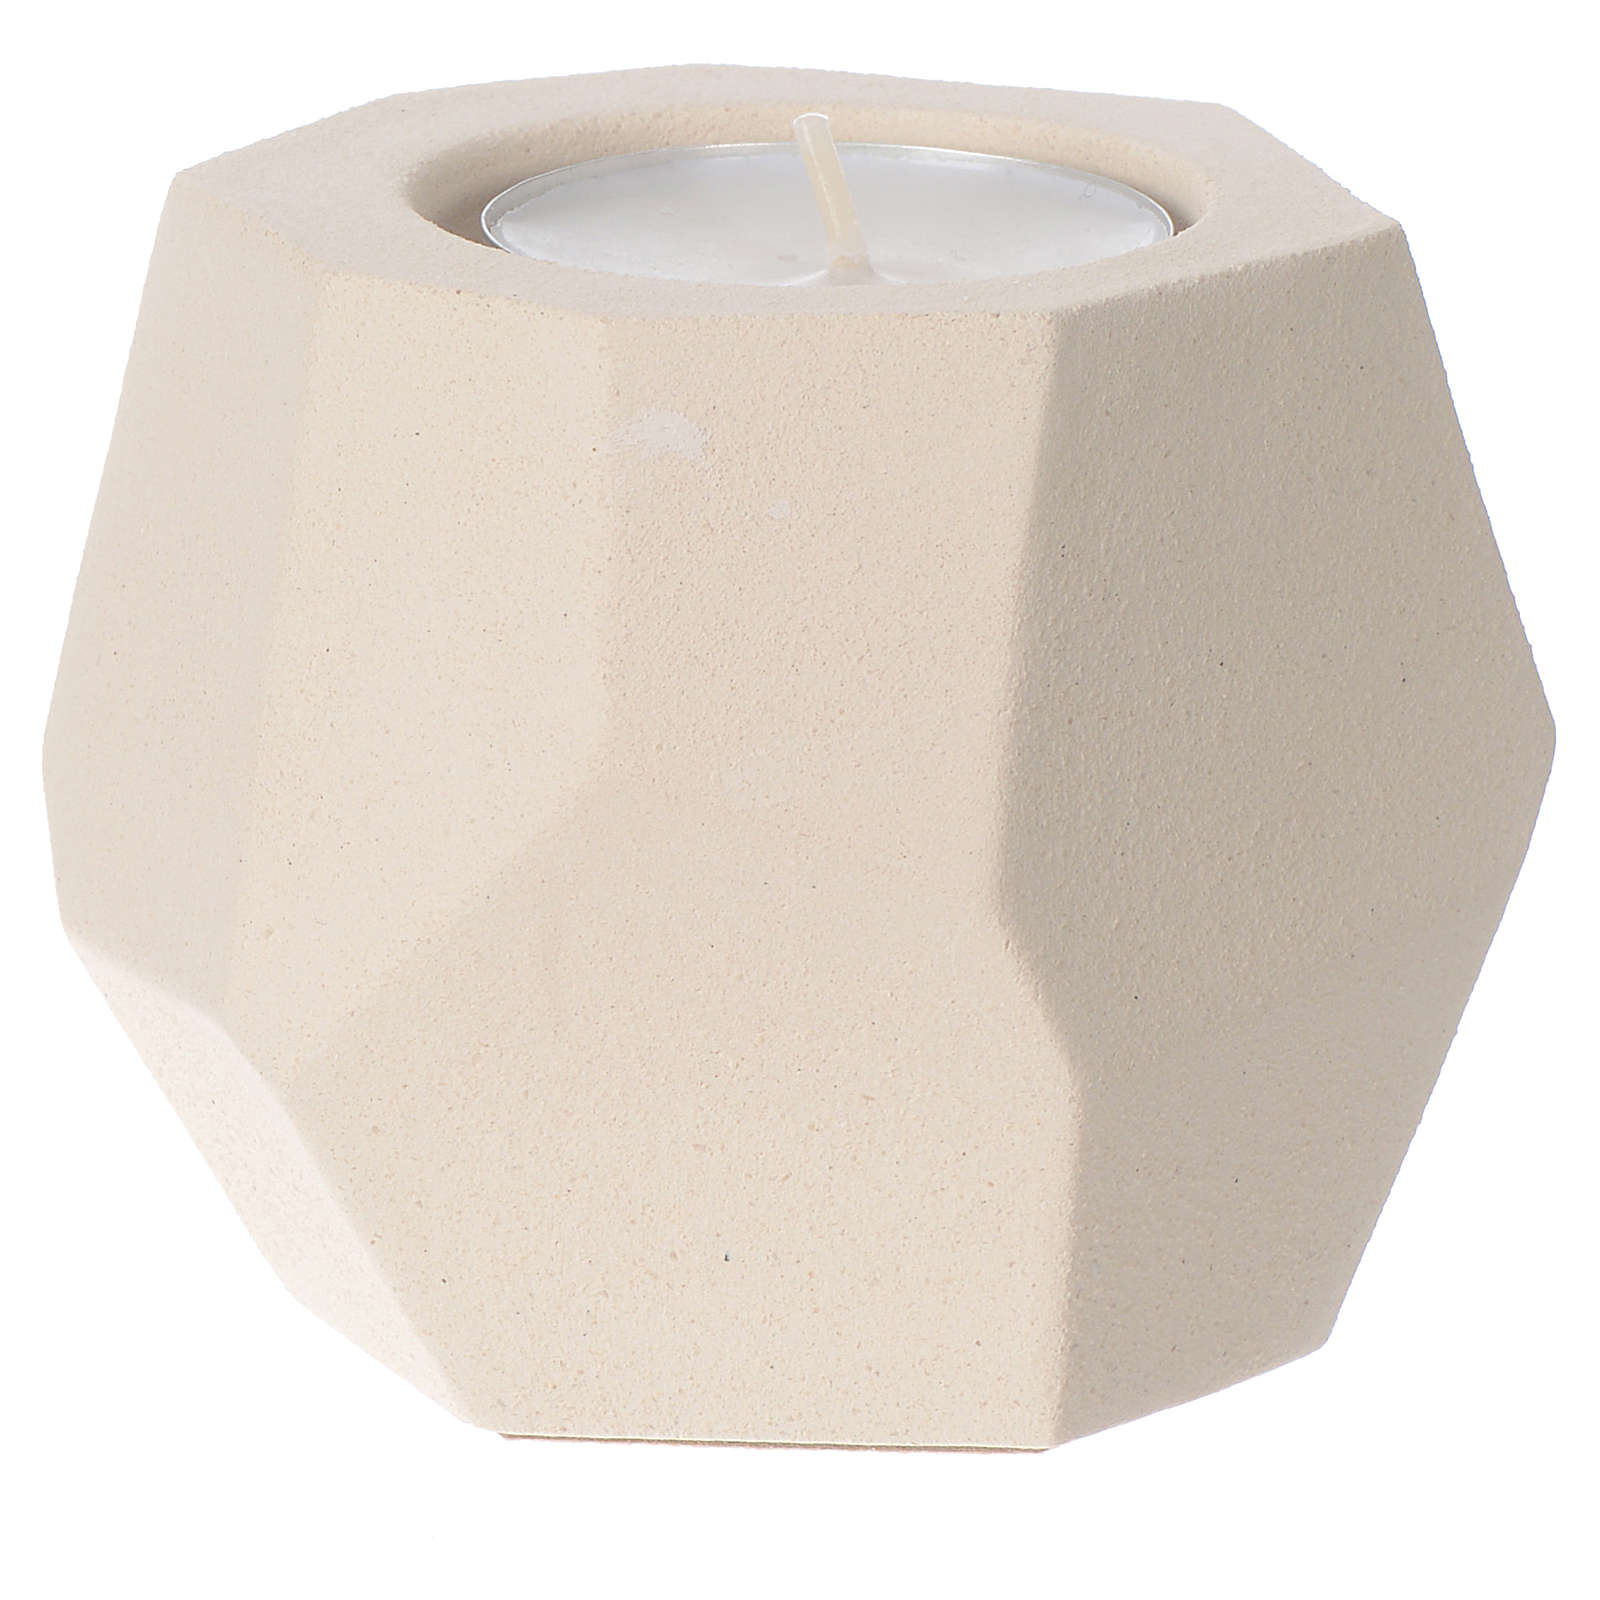 Prism shape candle in clay by Centro Ave, 6.5cm 3